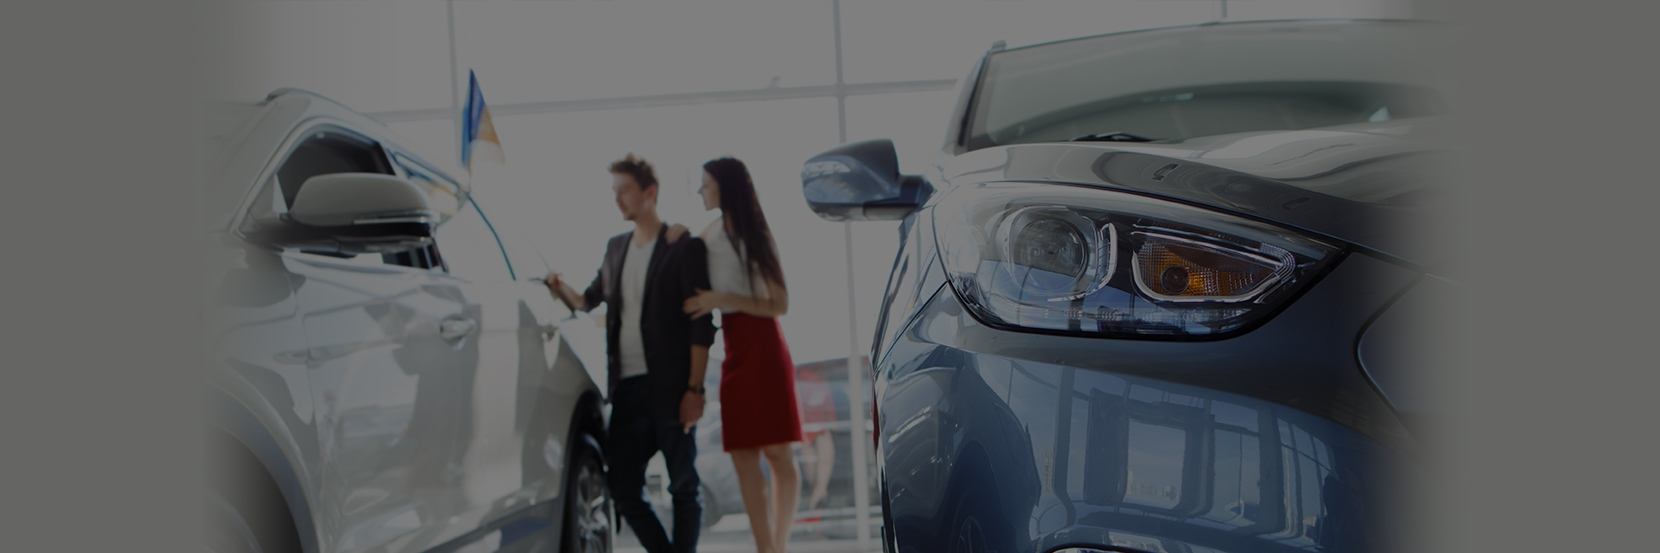 Motor vehicle solutions business enterprise equifax nz for Auto solutions motor company